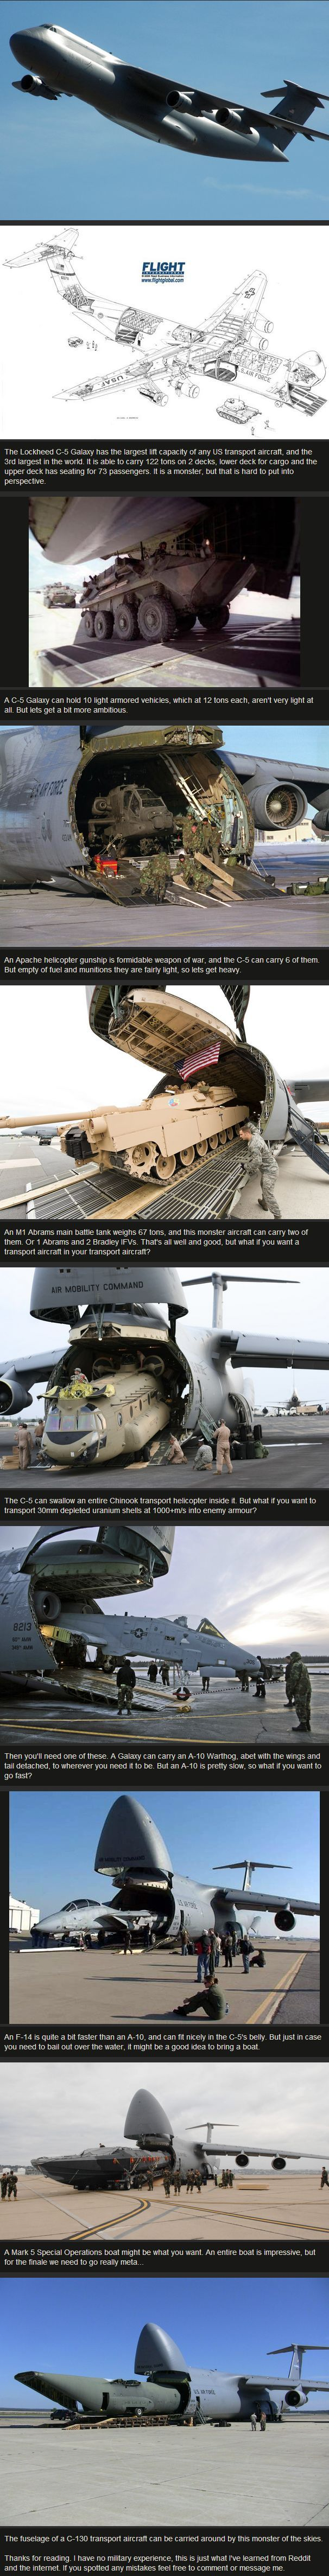 What can fit inside a C-5 Galaxy?